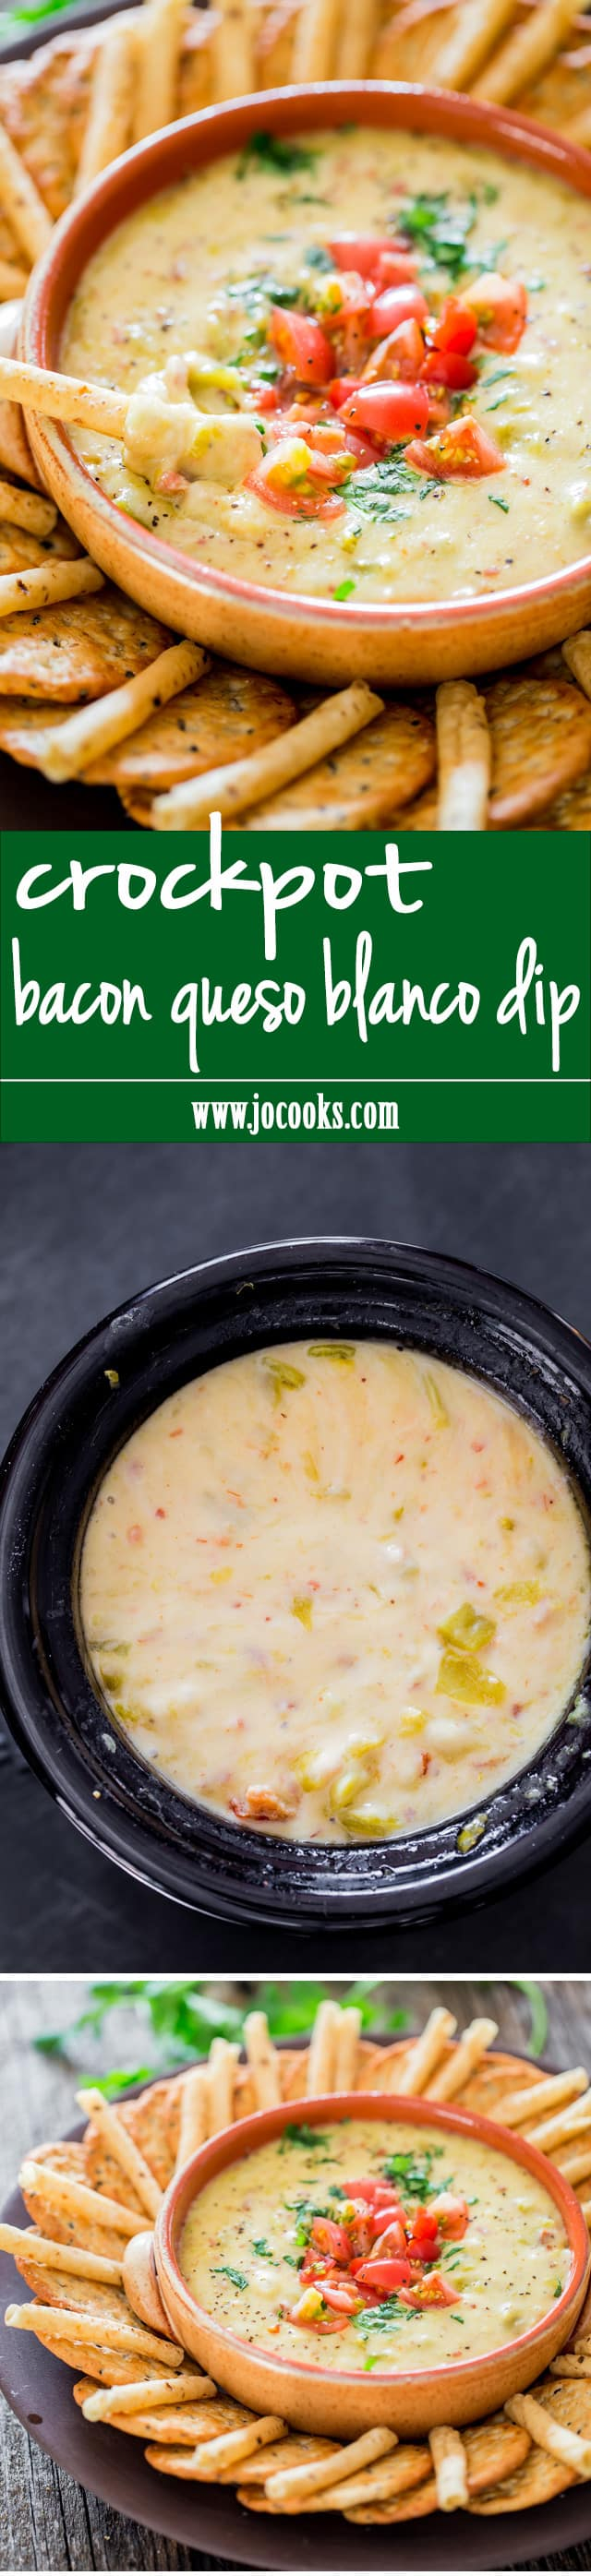 Crockpot Bacon Queso Blanco Dip - super cheesy queso blanco dip with my favorite ingredient; bacon! Perfect snack or appetizer for the holidays.